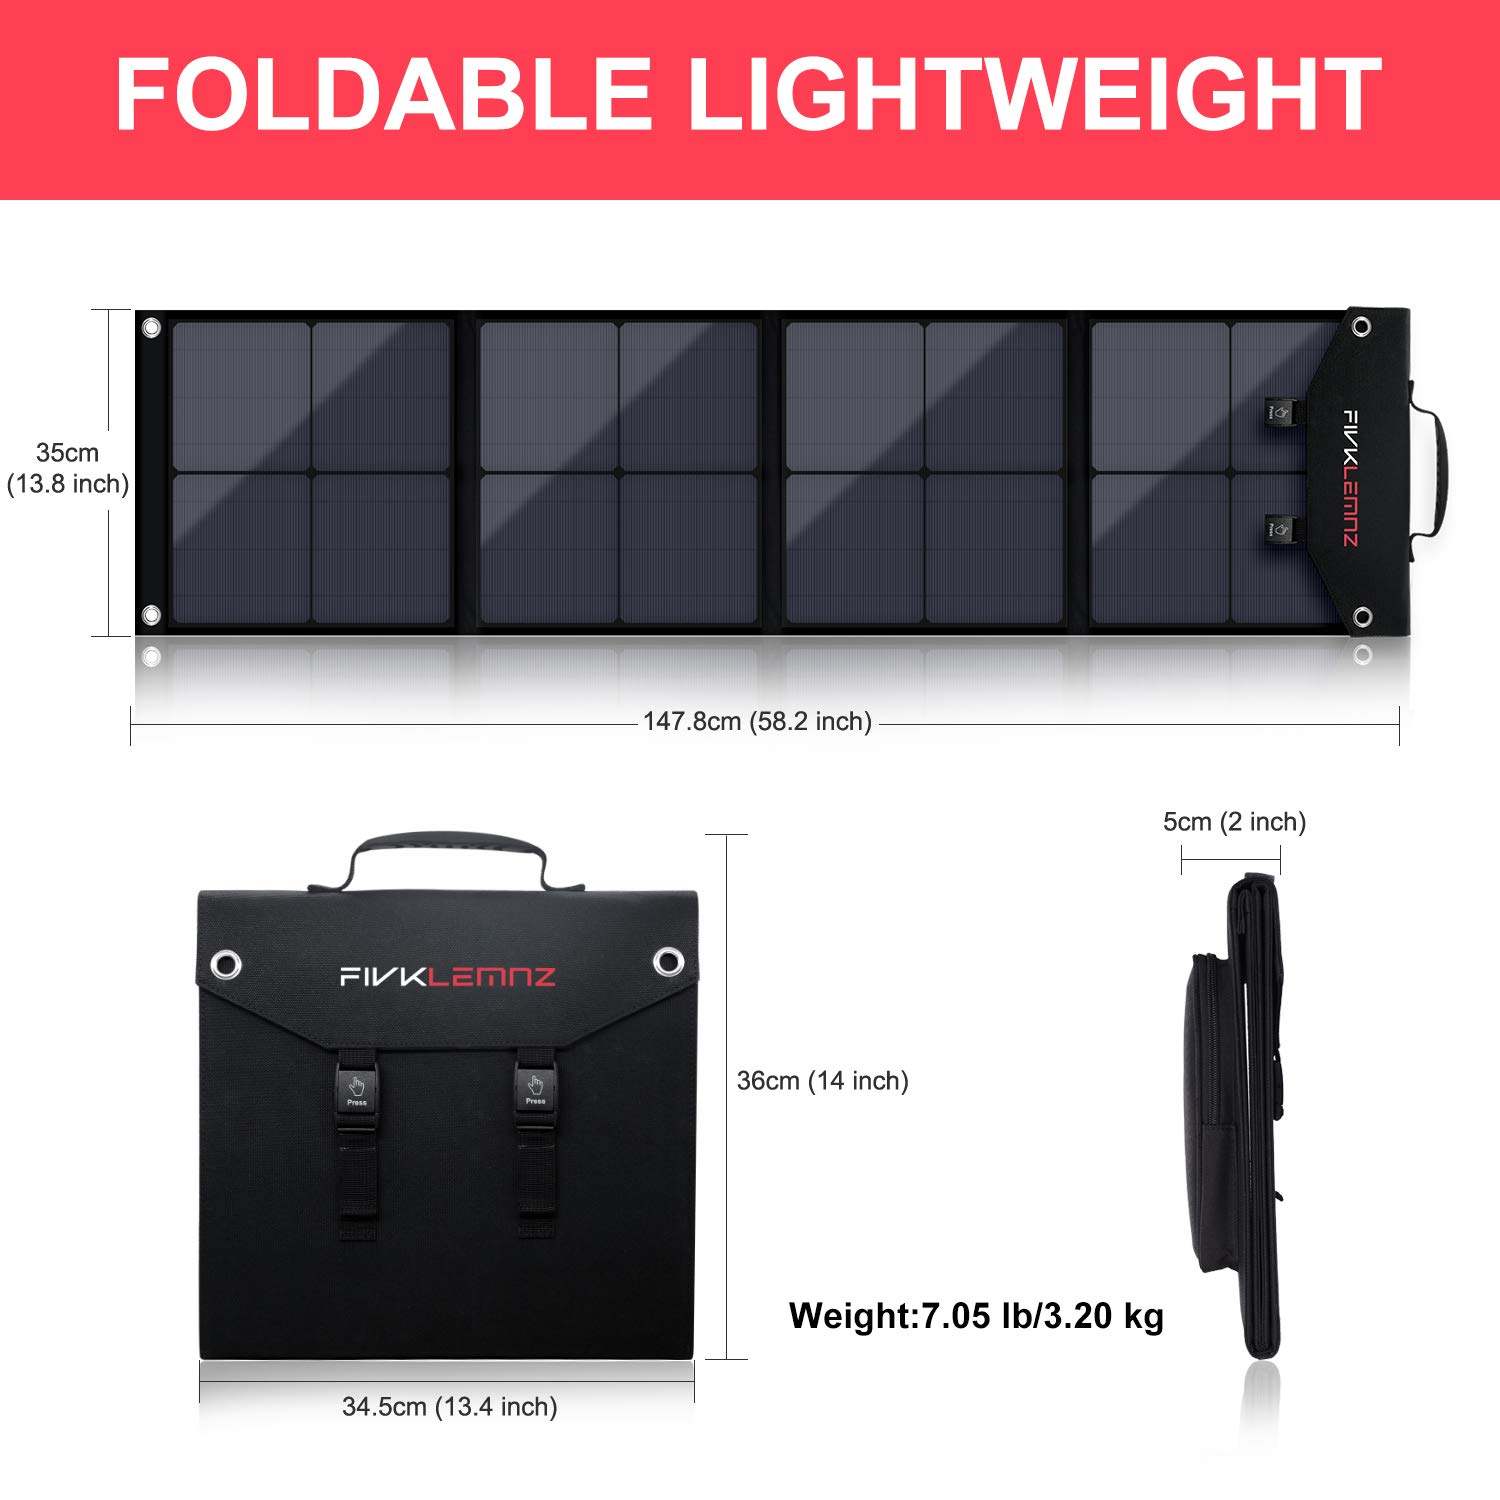 FIVKLEMNZ 60W Foldable Solar Panel Charger for Suaoki//Jackery//Enkeeo//Goal Zero Yeti//Webetop//ROCKPALS Portable Power Station Generator and QC3.0 USB Ports Laptop Tablet GPS iPhone iPad Camera